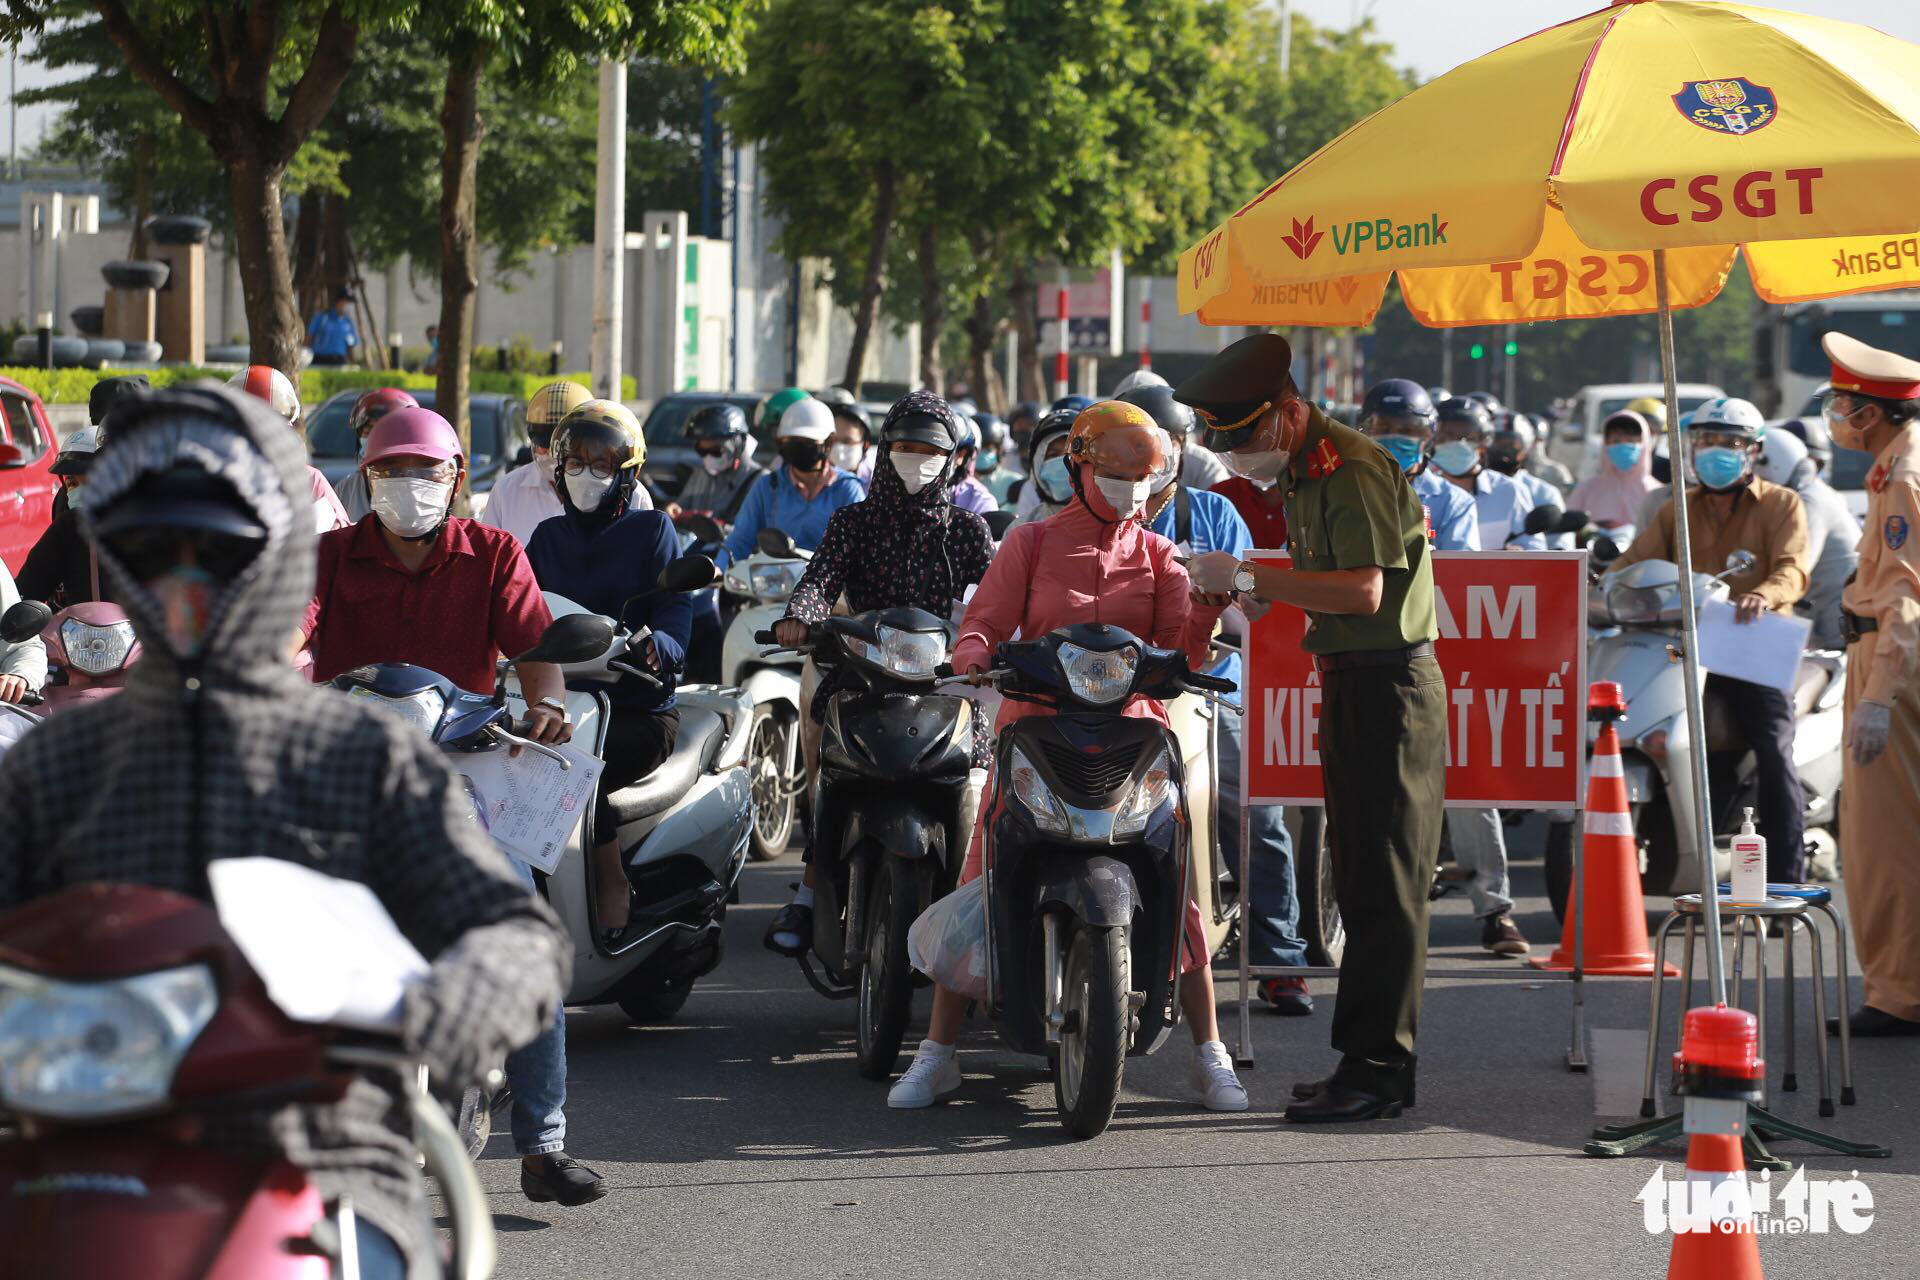 An officer checks documents of commuters in Hanoi, September 6, 2021. Photo: Chi Tue / Tuoi Tre